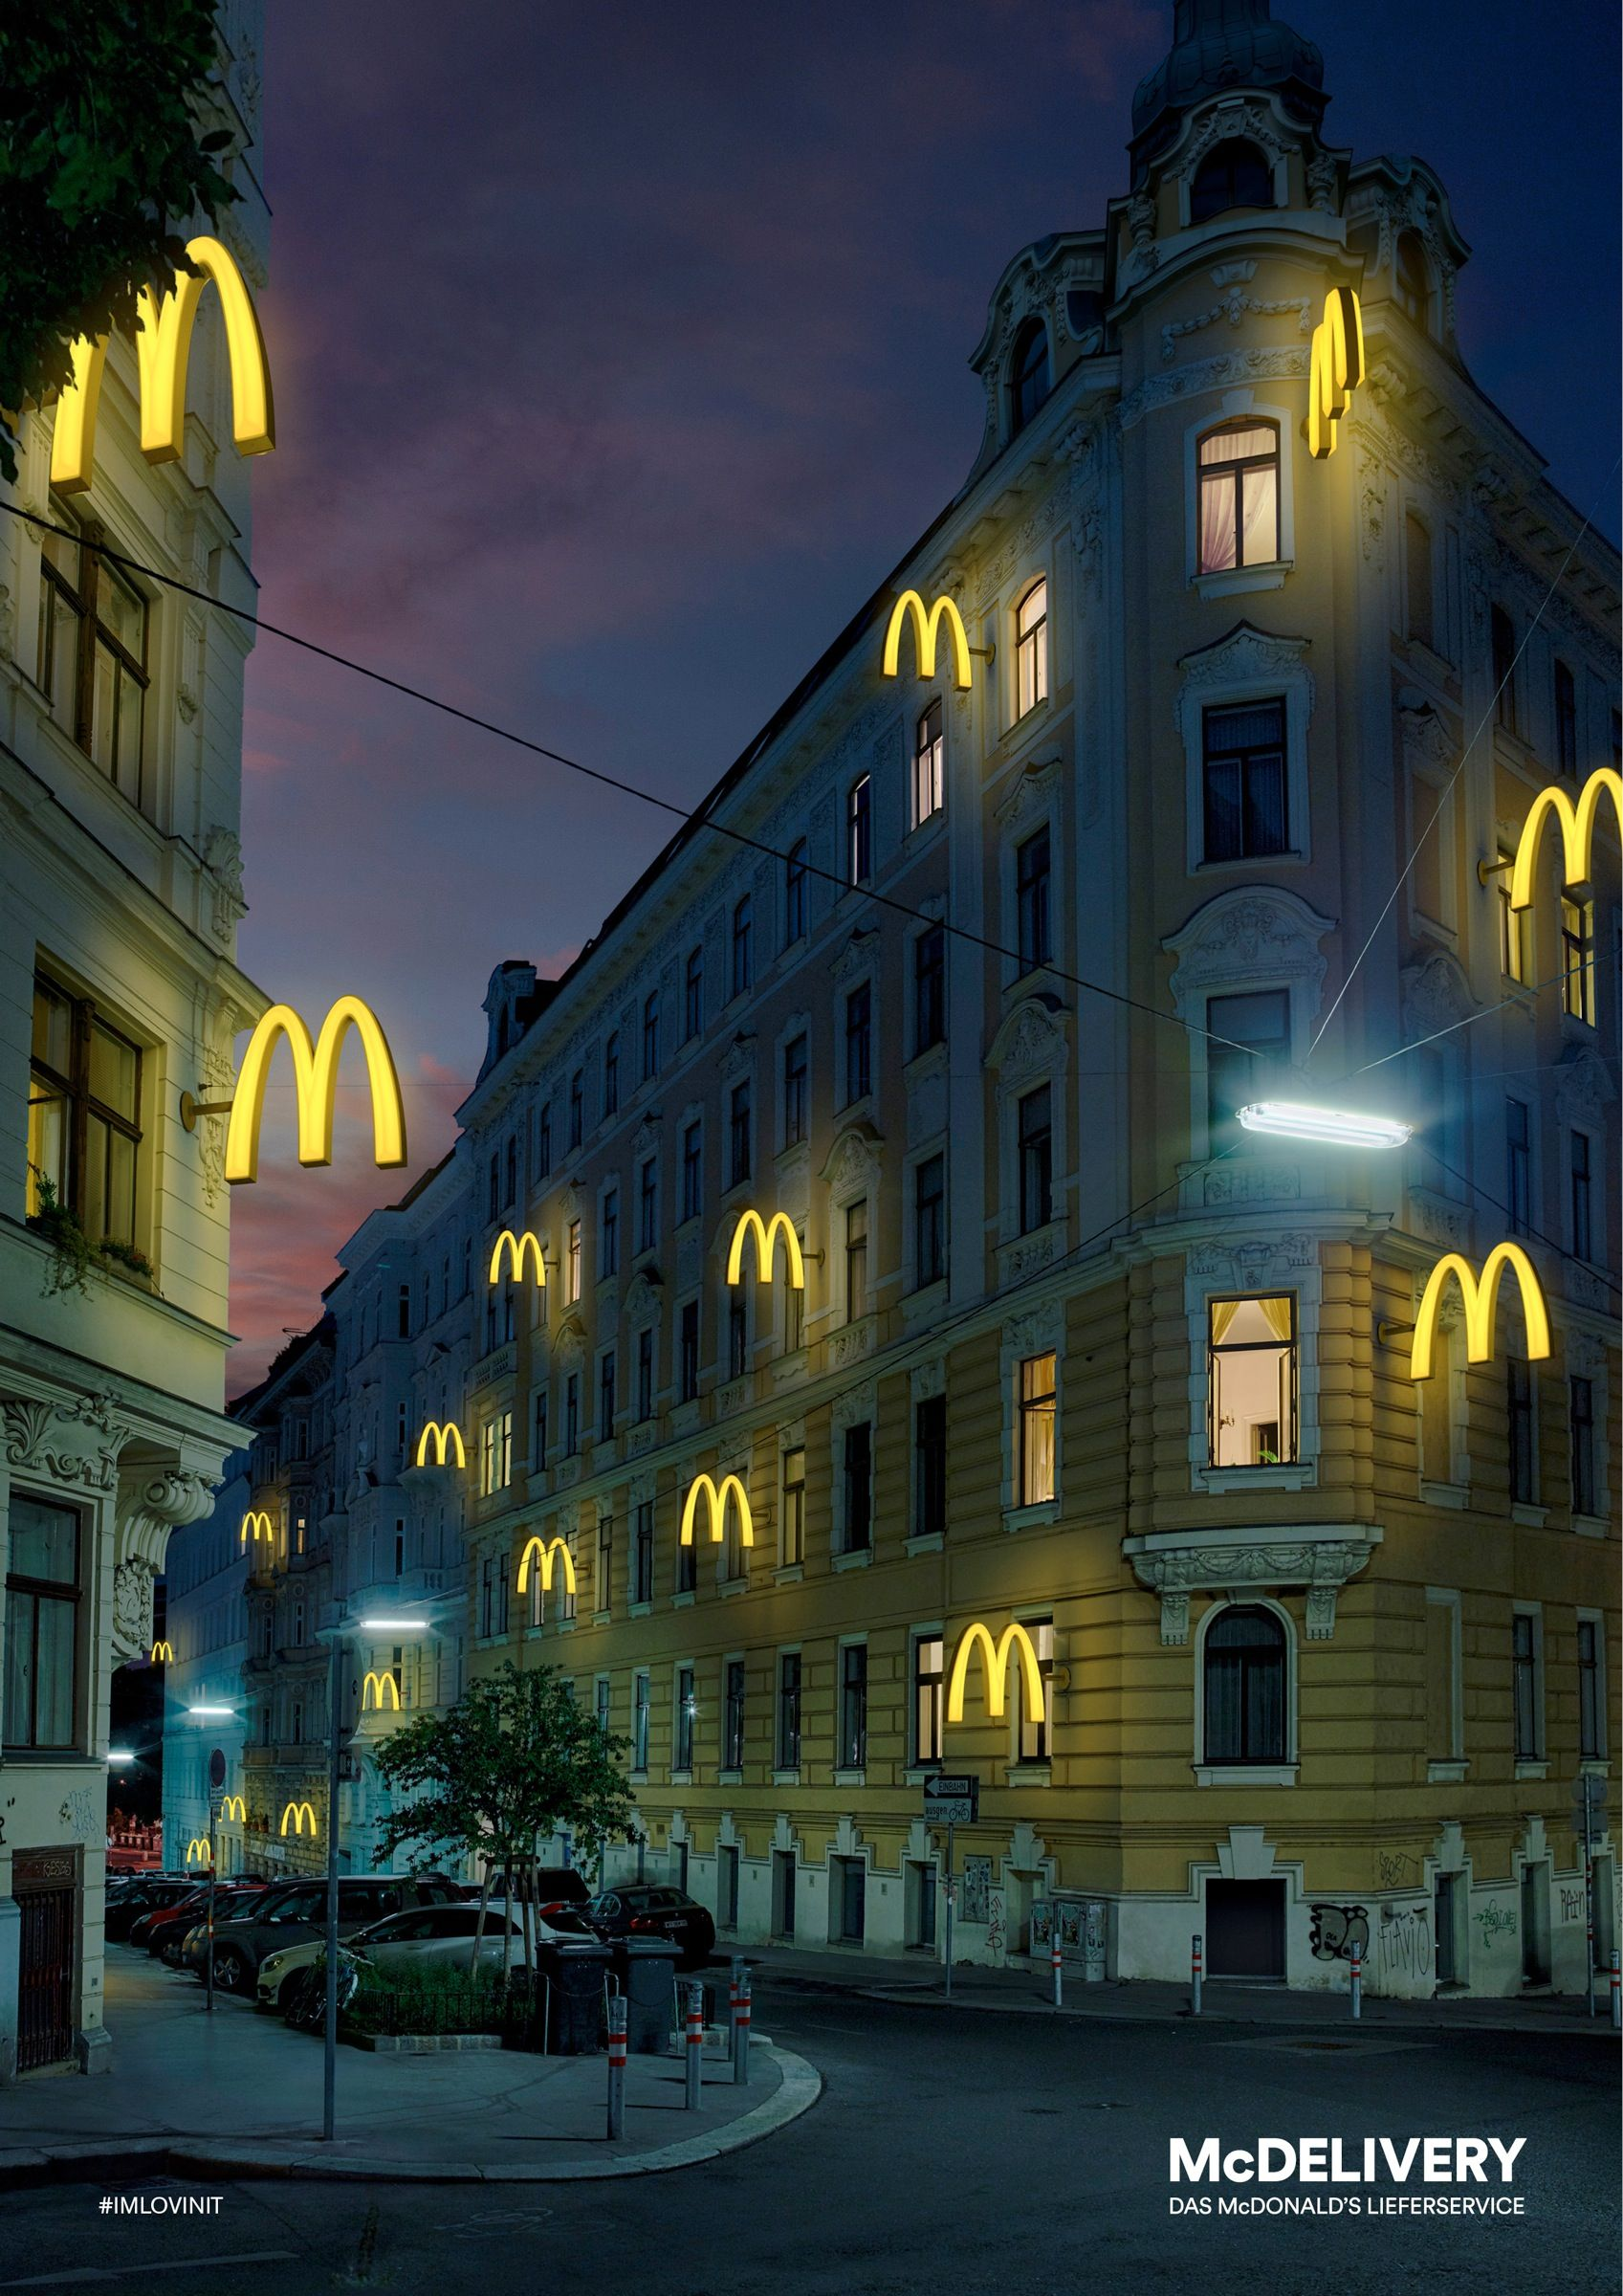 Mcdonalds mcdelivery ads of the world ads creative